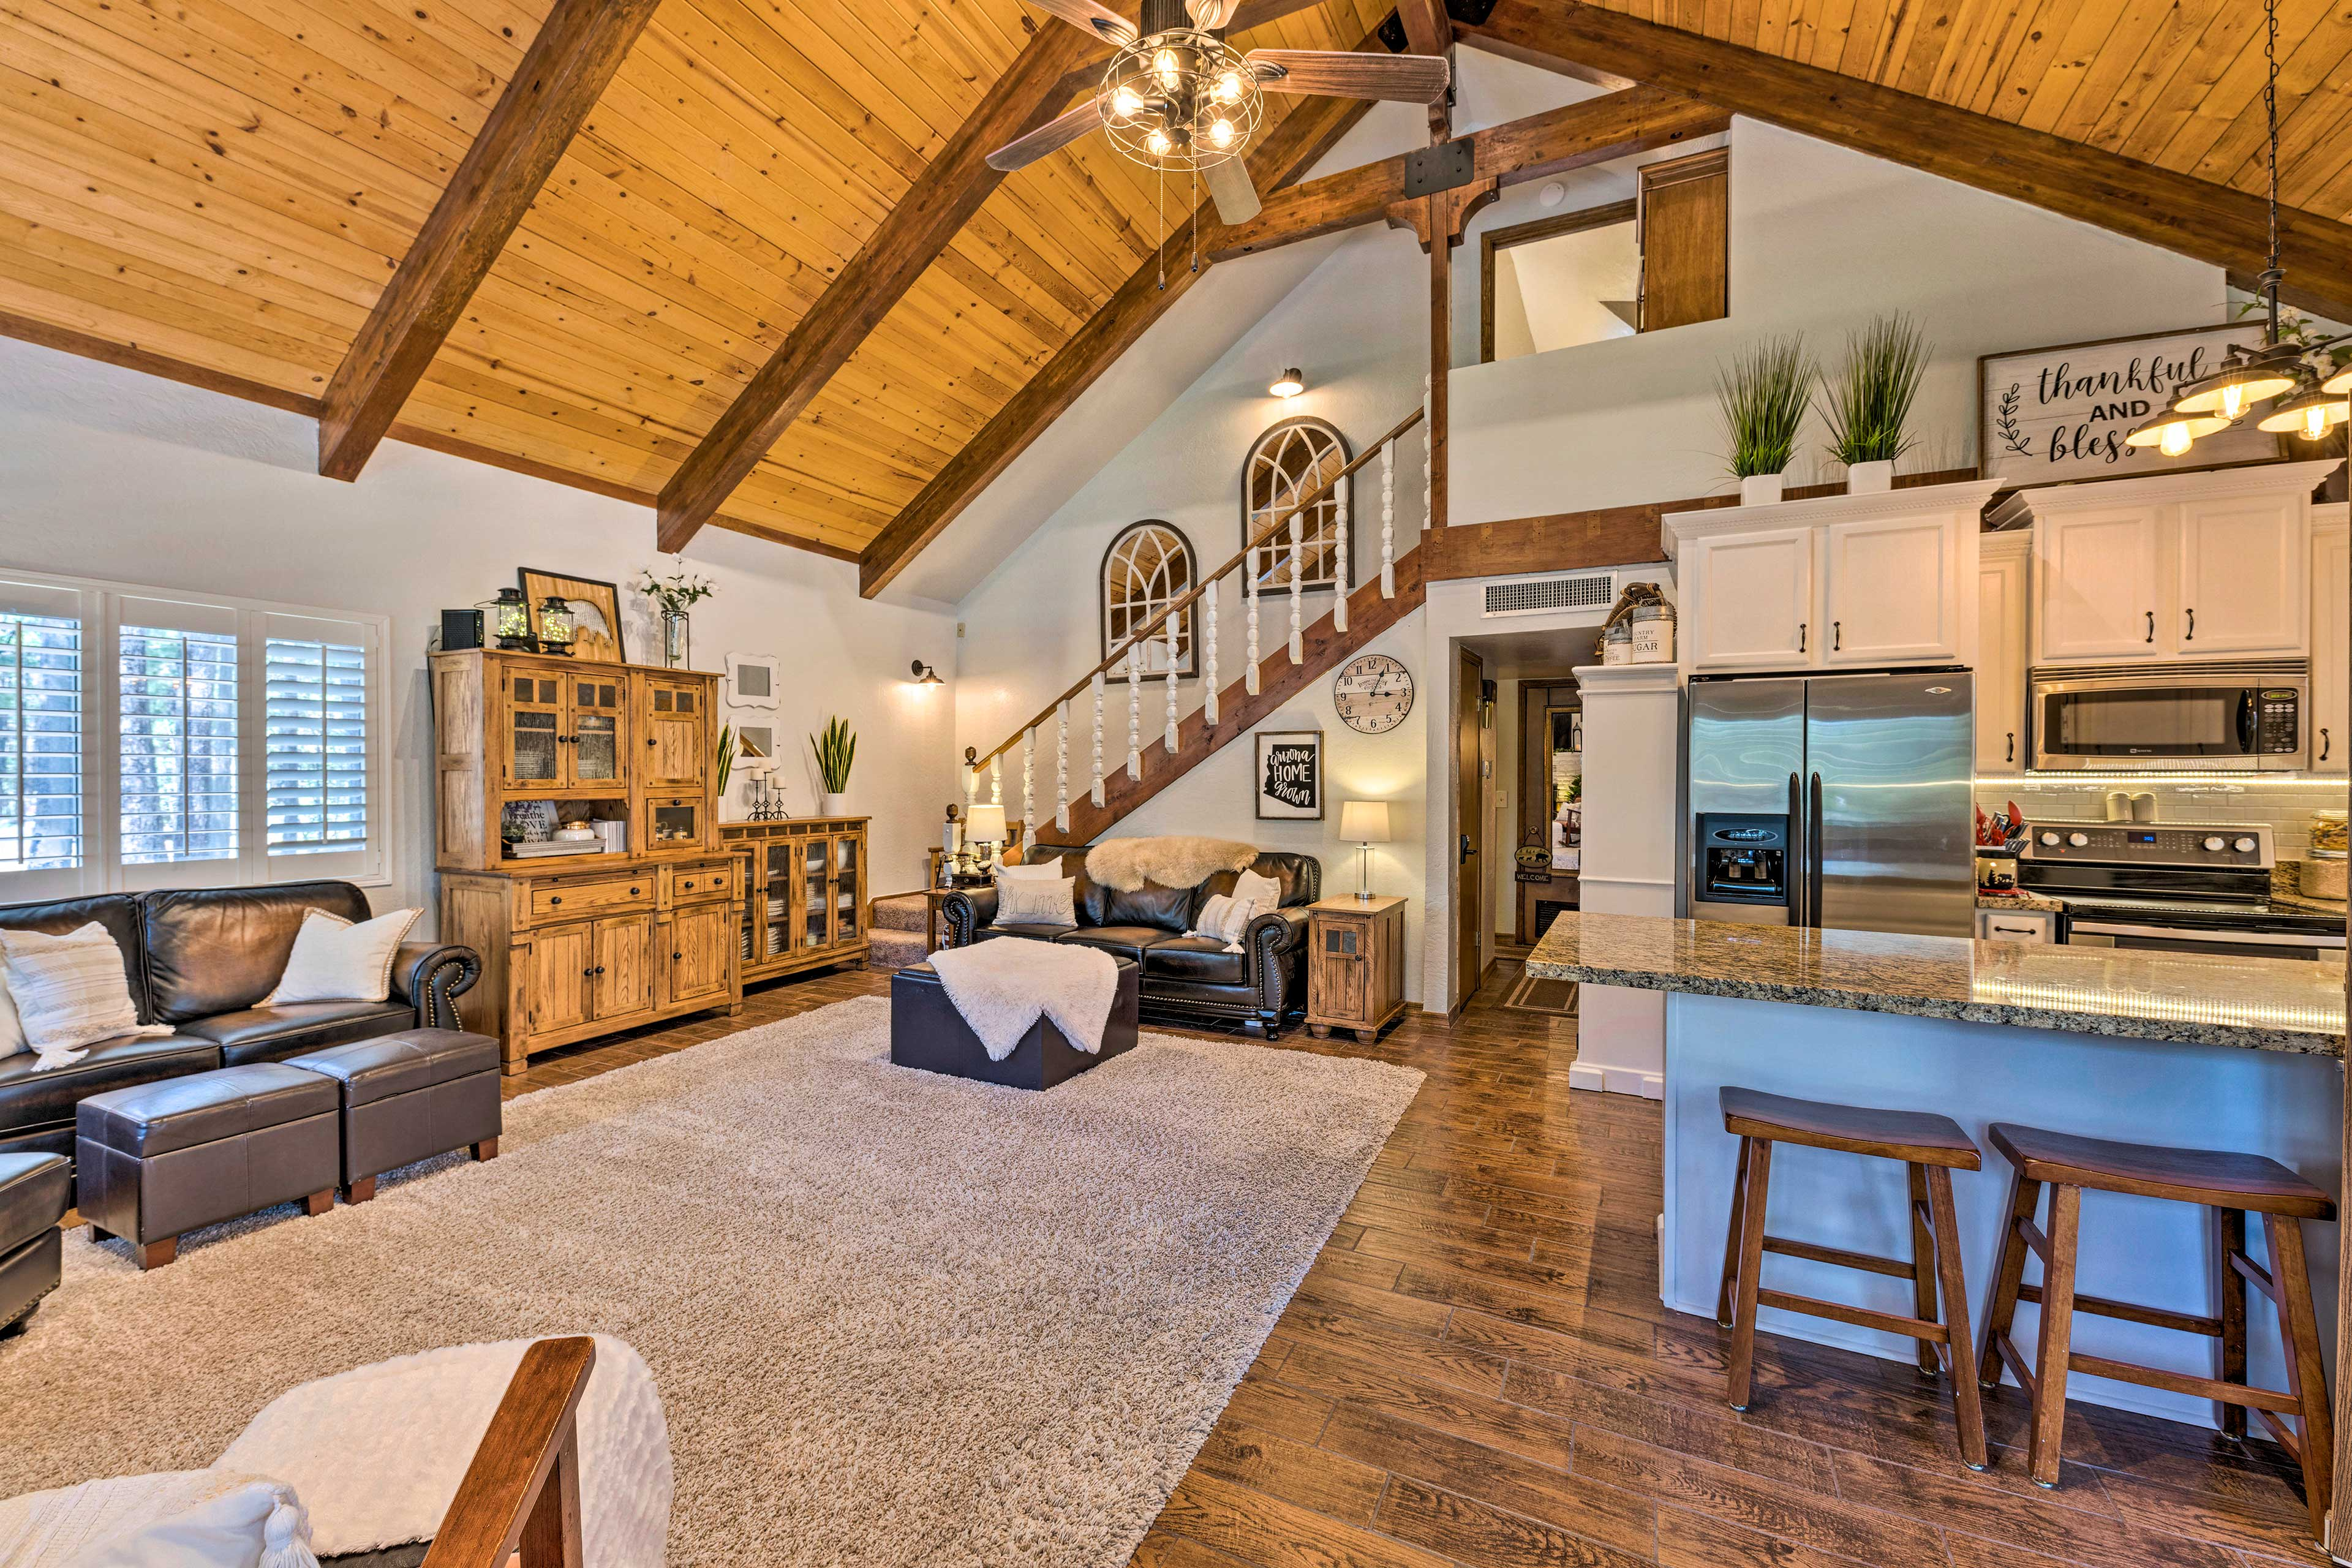 This home features hardwood floors and high ceilings.